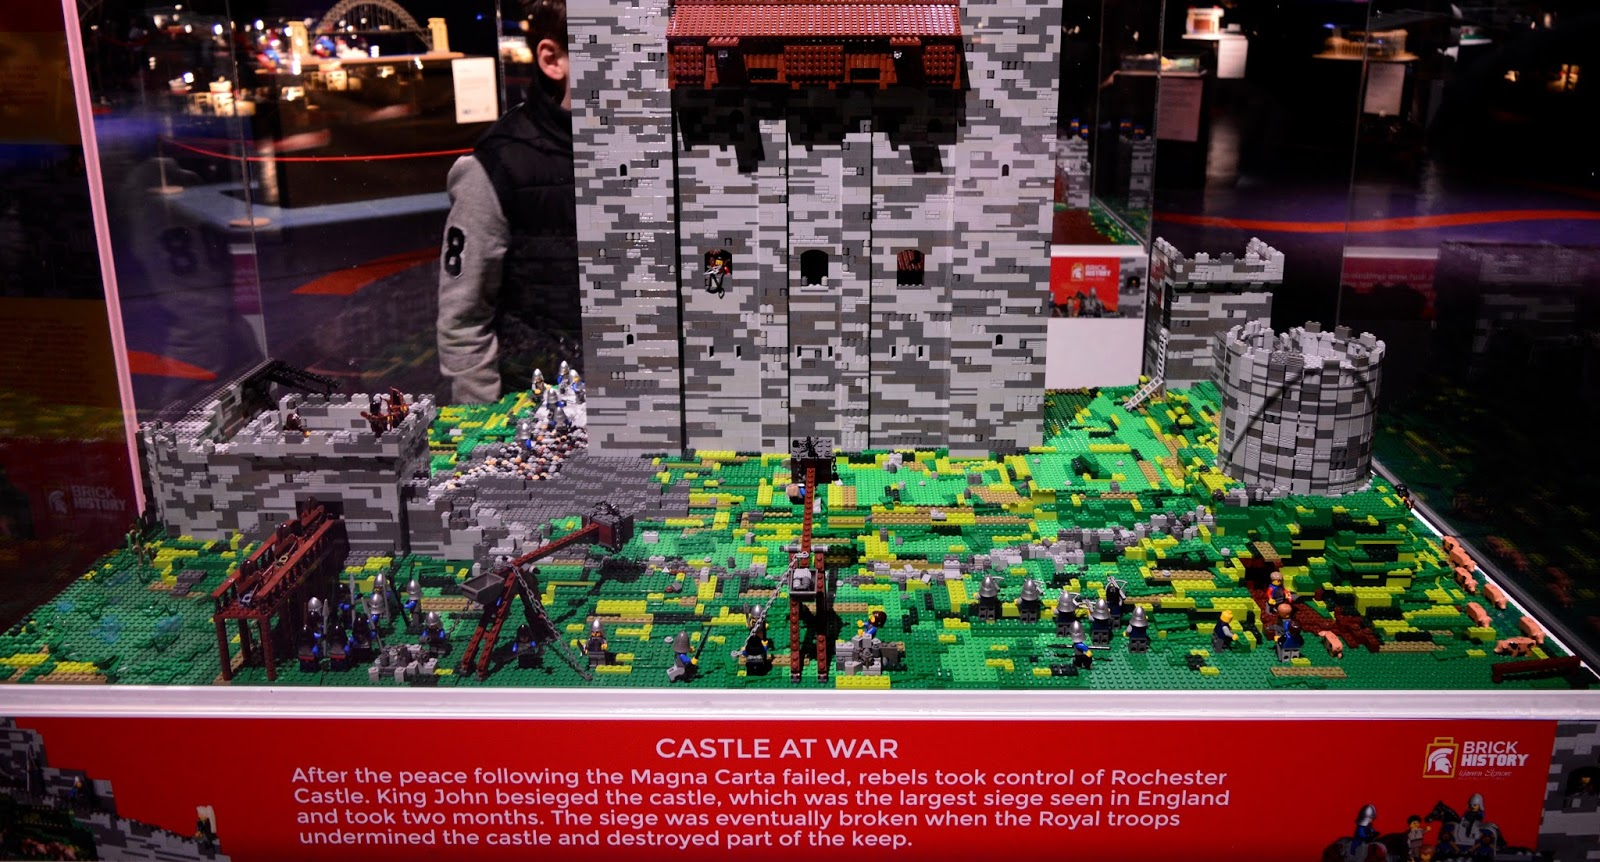 Brick History & North East Landmarks | New Lego Exhibitions at Life Science Centre, Newcastle | A Review - Castle at war